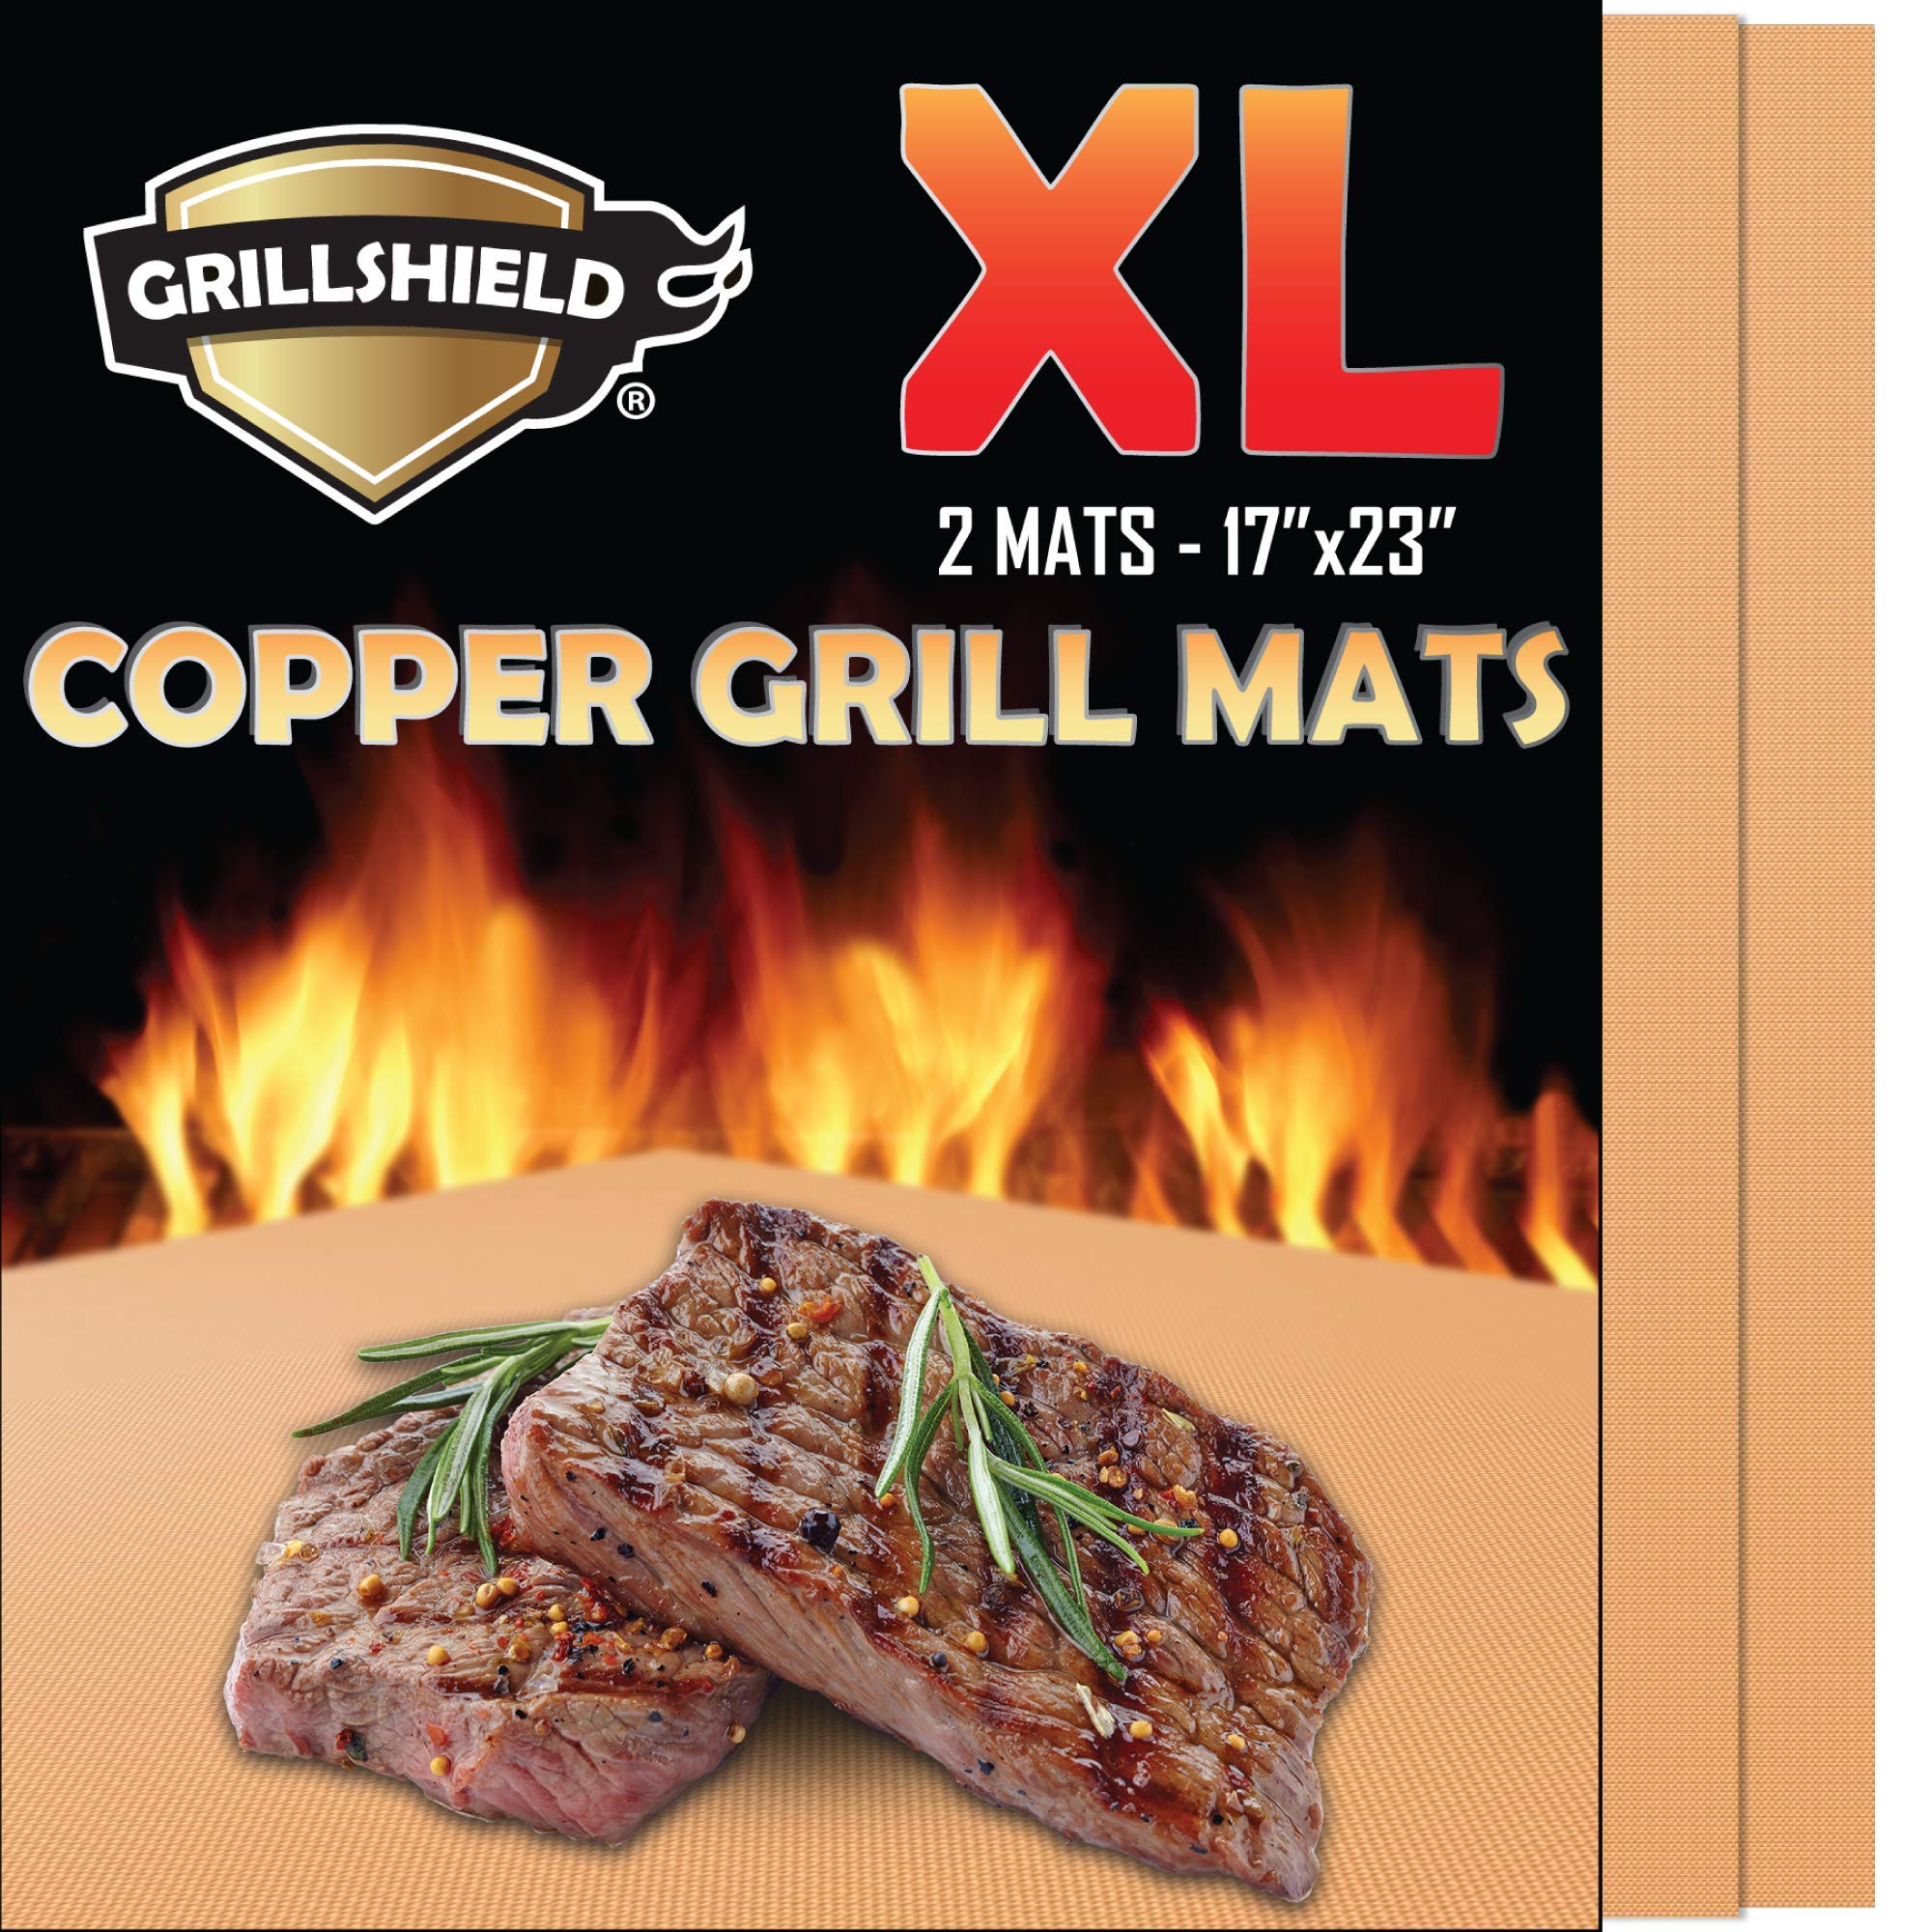 GrillShield Extra Large Copper Grill and Bake Mats Set of 2 - Best Gift - 17 X 23 inches Non Stick Mats for BBQ Grilling & Baking, Reusable and Easy to Clean by GrillShield